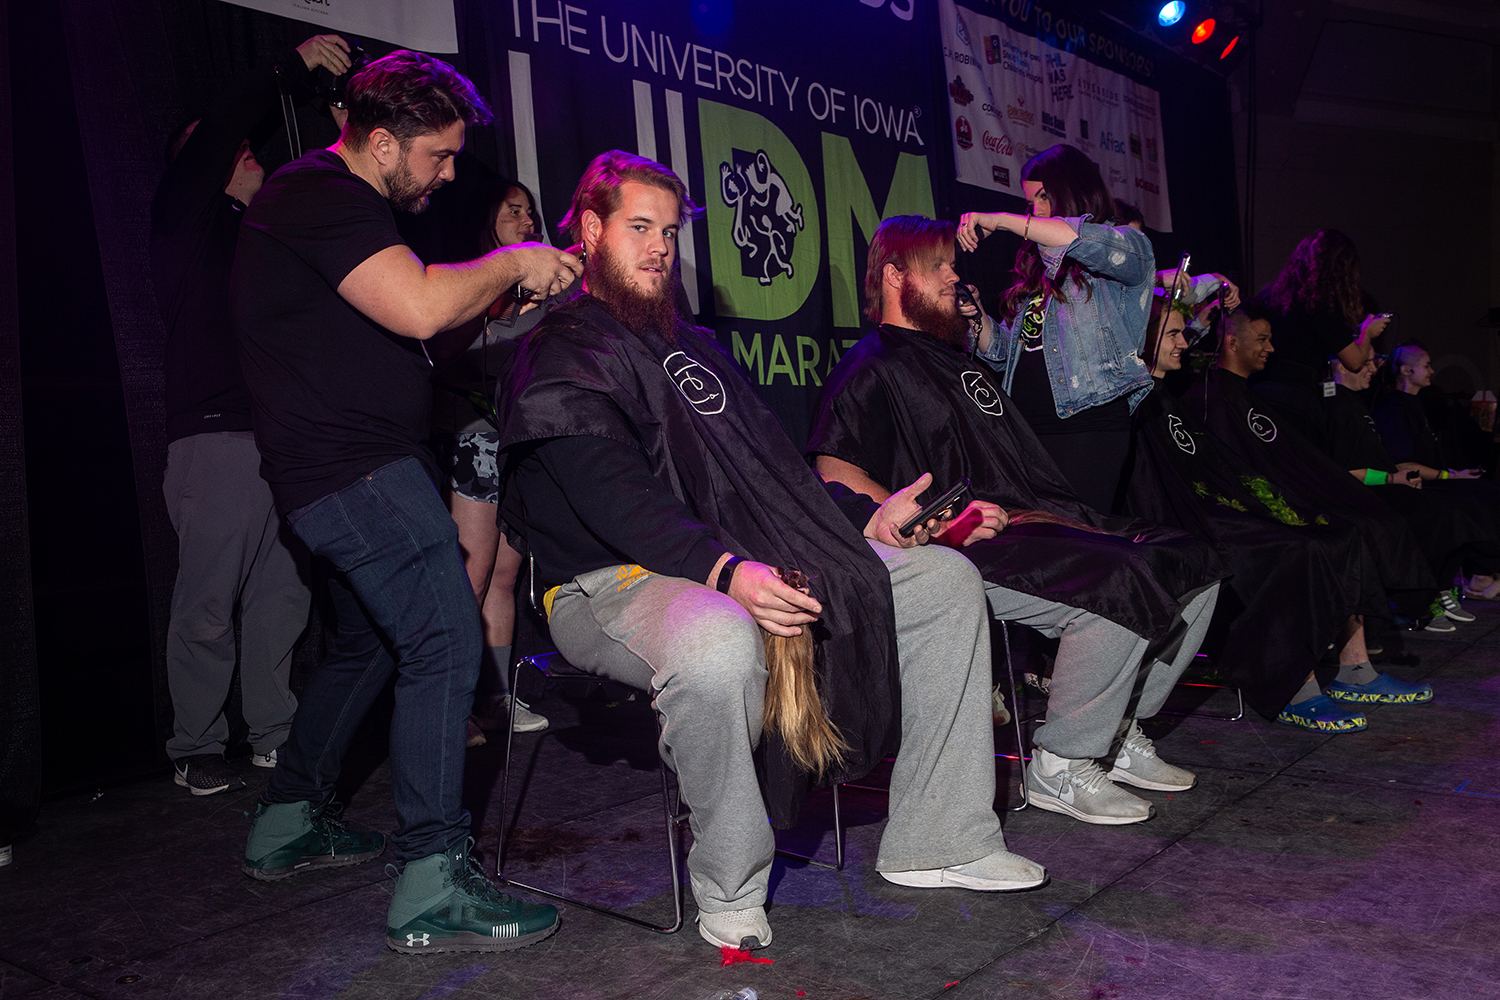 Landan (left) and Levi Paulsen (right) get a trim during Dance Marathon 25 at the Iowa Memorial Union on Saturday, February 2, 2019. After Landan's girlfriend Alexis Henry raised over $10,000 for the Big Event, the twins committed to losing their locks.